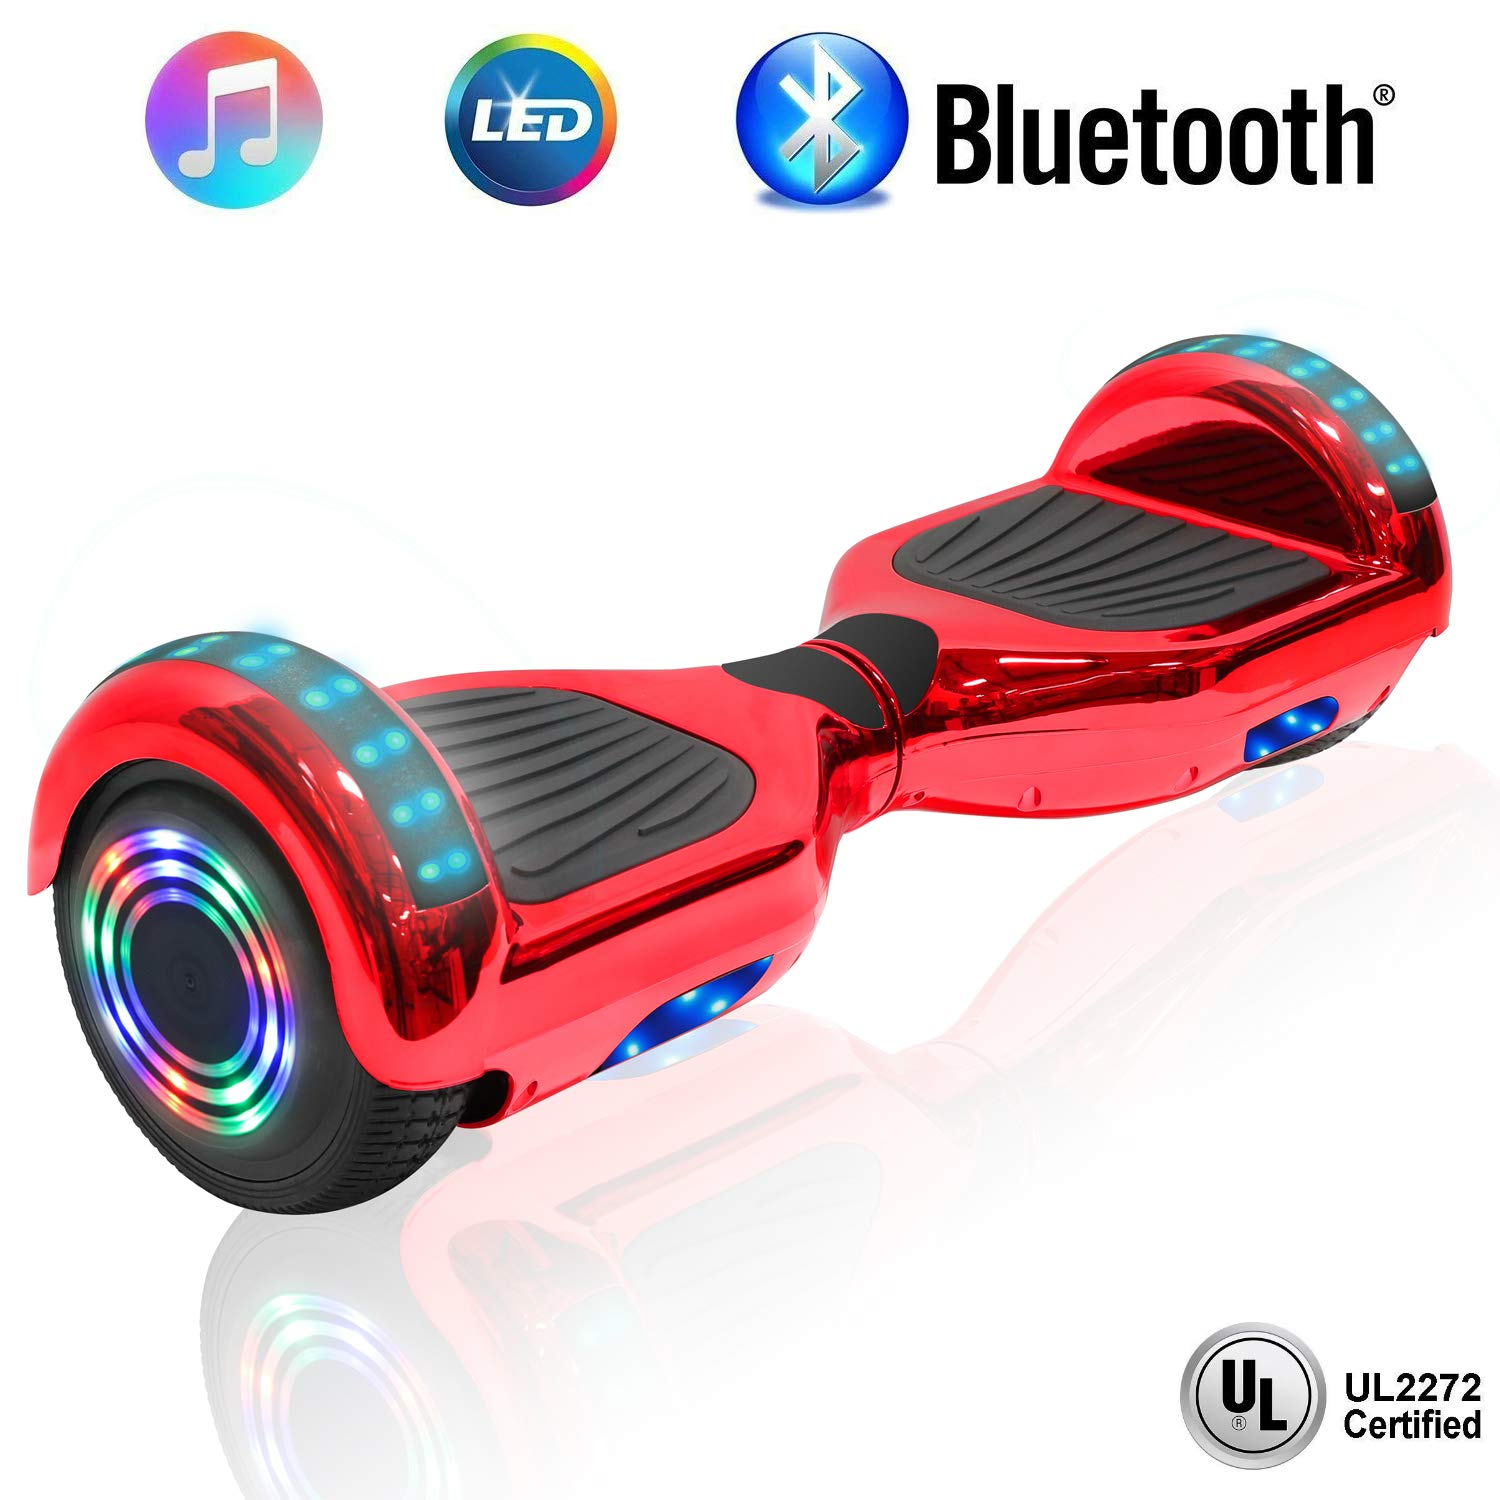 NHT 6.5'' Hoverboard Electric Self Balancing Scooter Sidelights - UL2272 Certified Black, Blue, Pink, Red, White (Chrome Red) by NHT (Image #1)